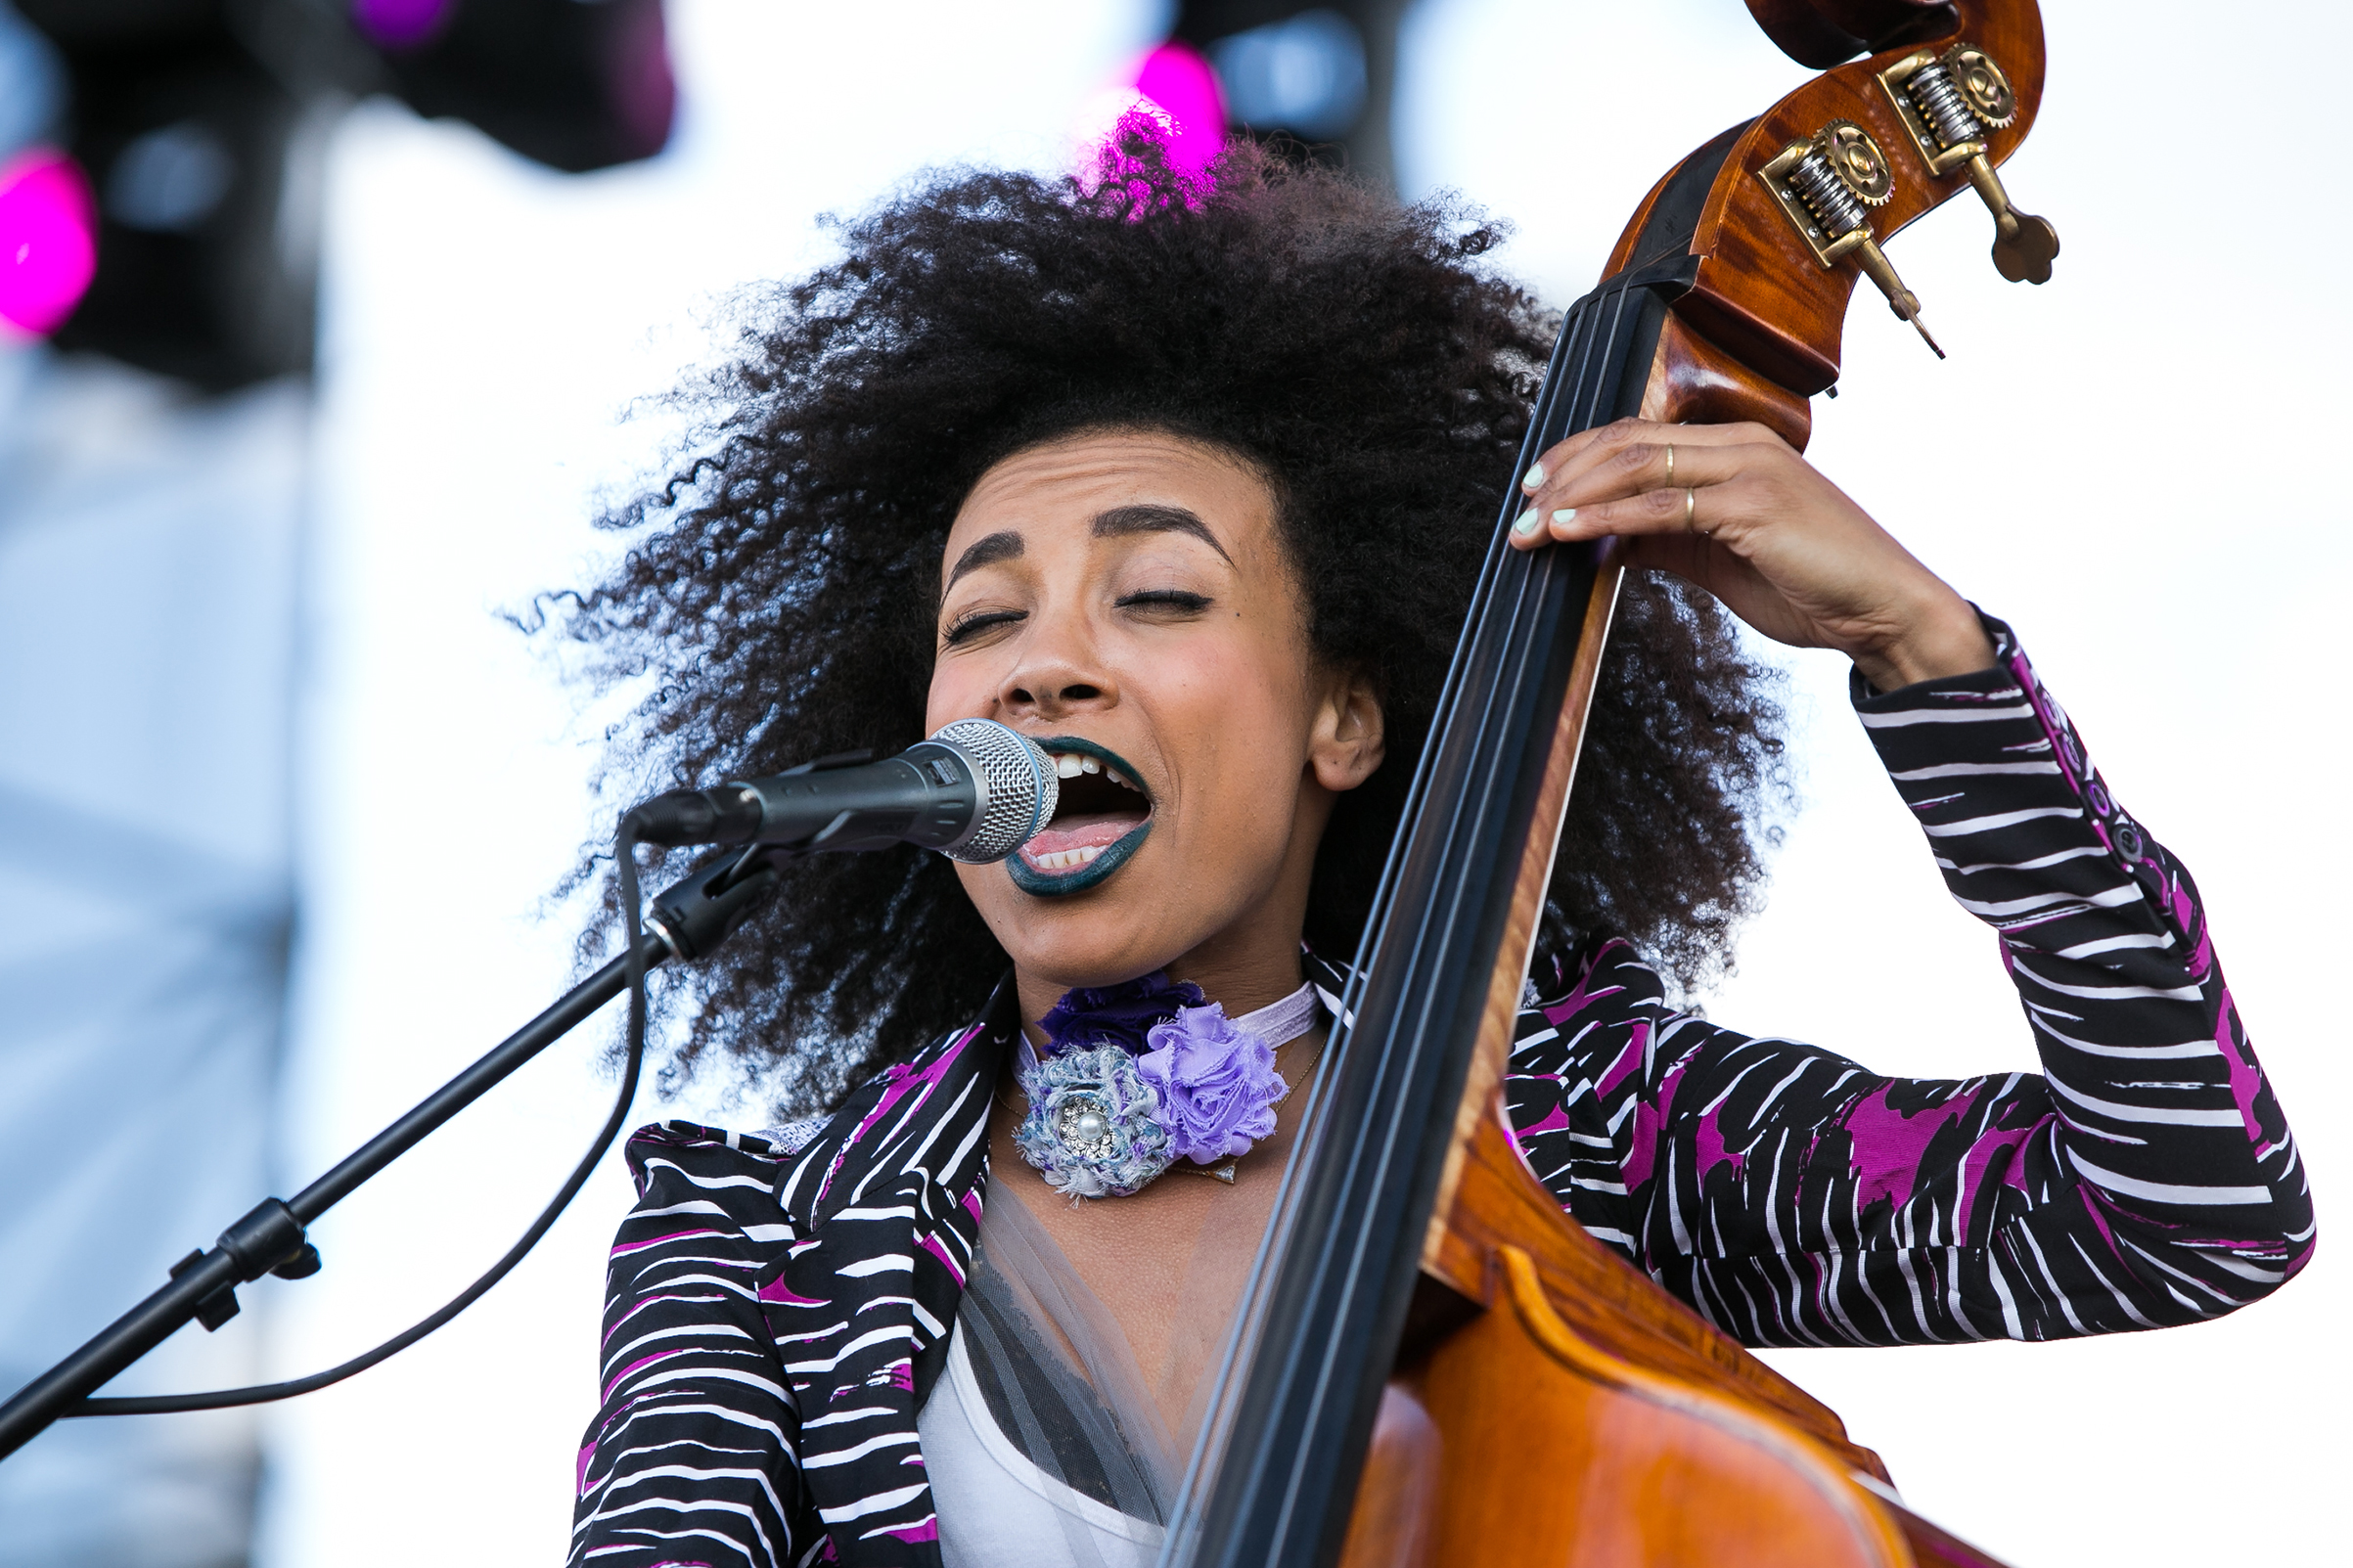 Esperanza Spalding performs during the 2017 Jazz in The Gardens at the Hard Rock Stadium in Miami Gardens, March 19, 2017.